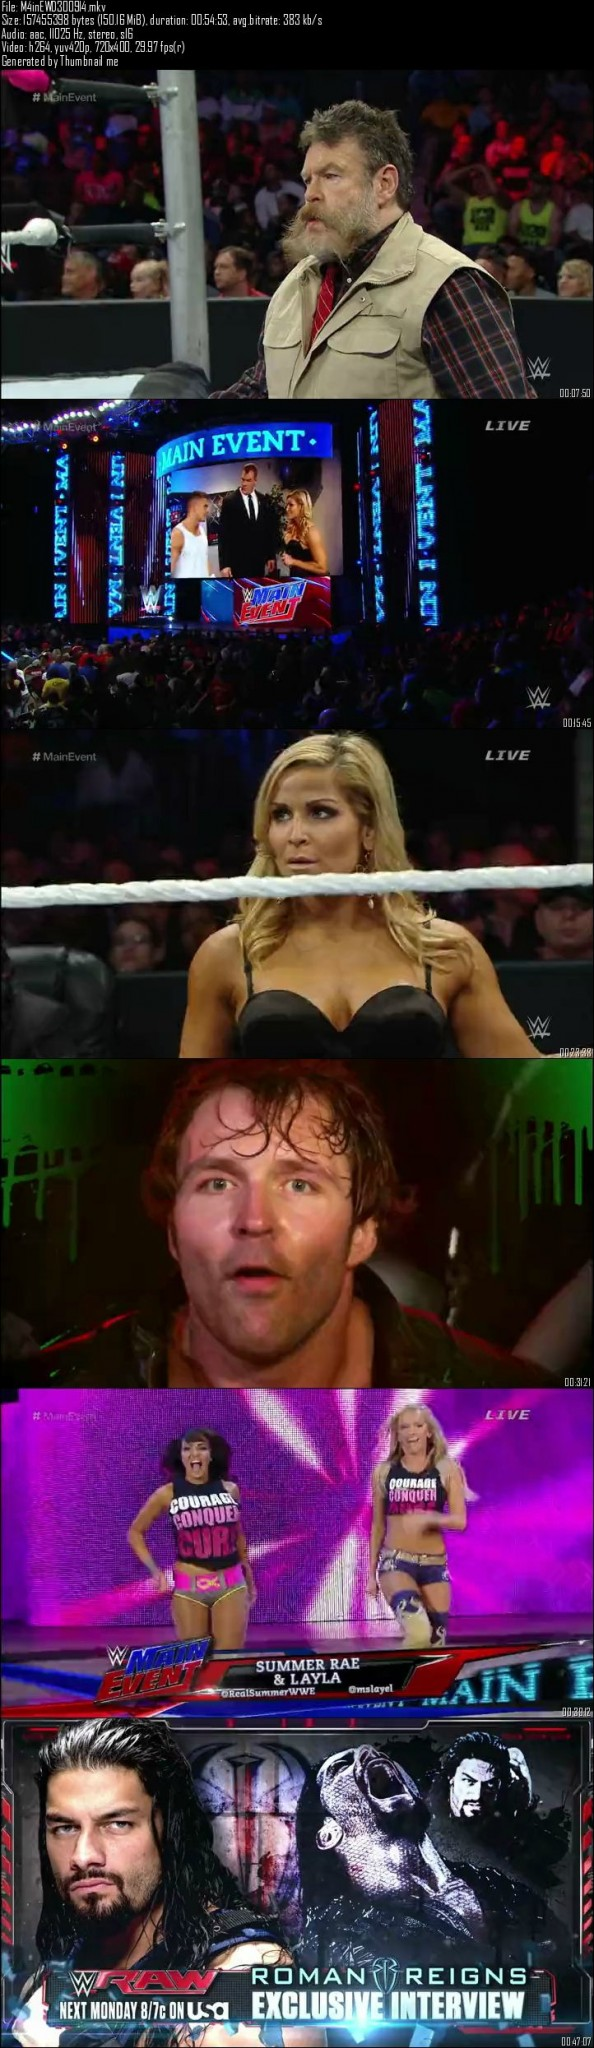 WWE Main Event 30th September (2014)